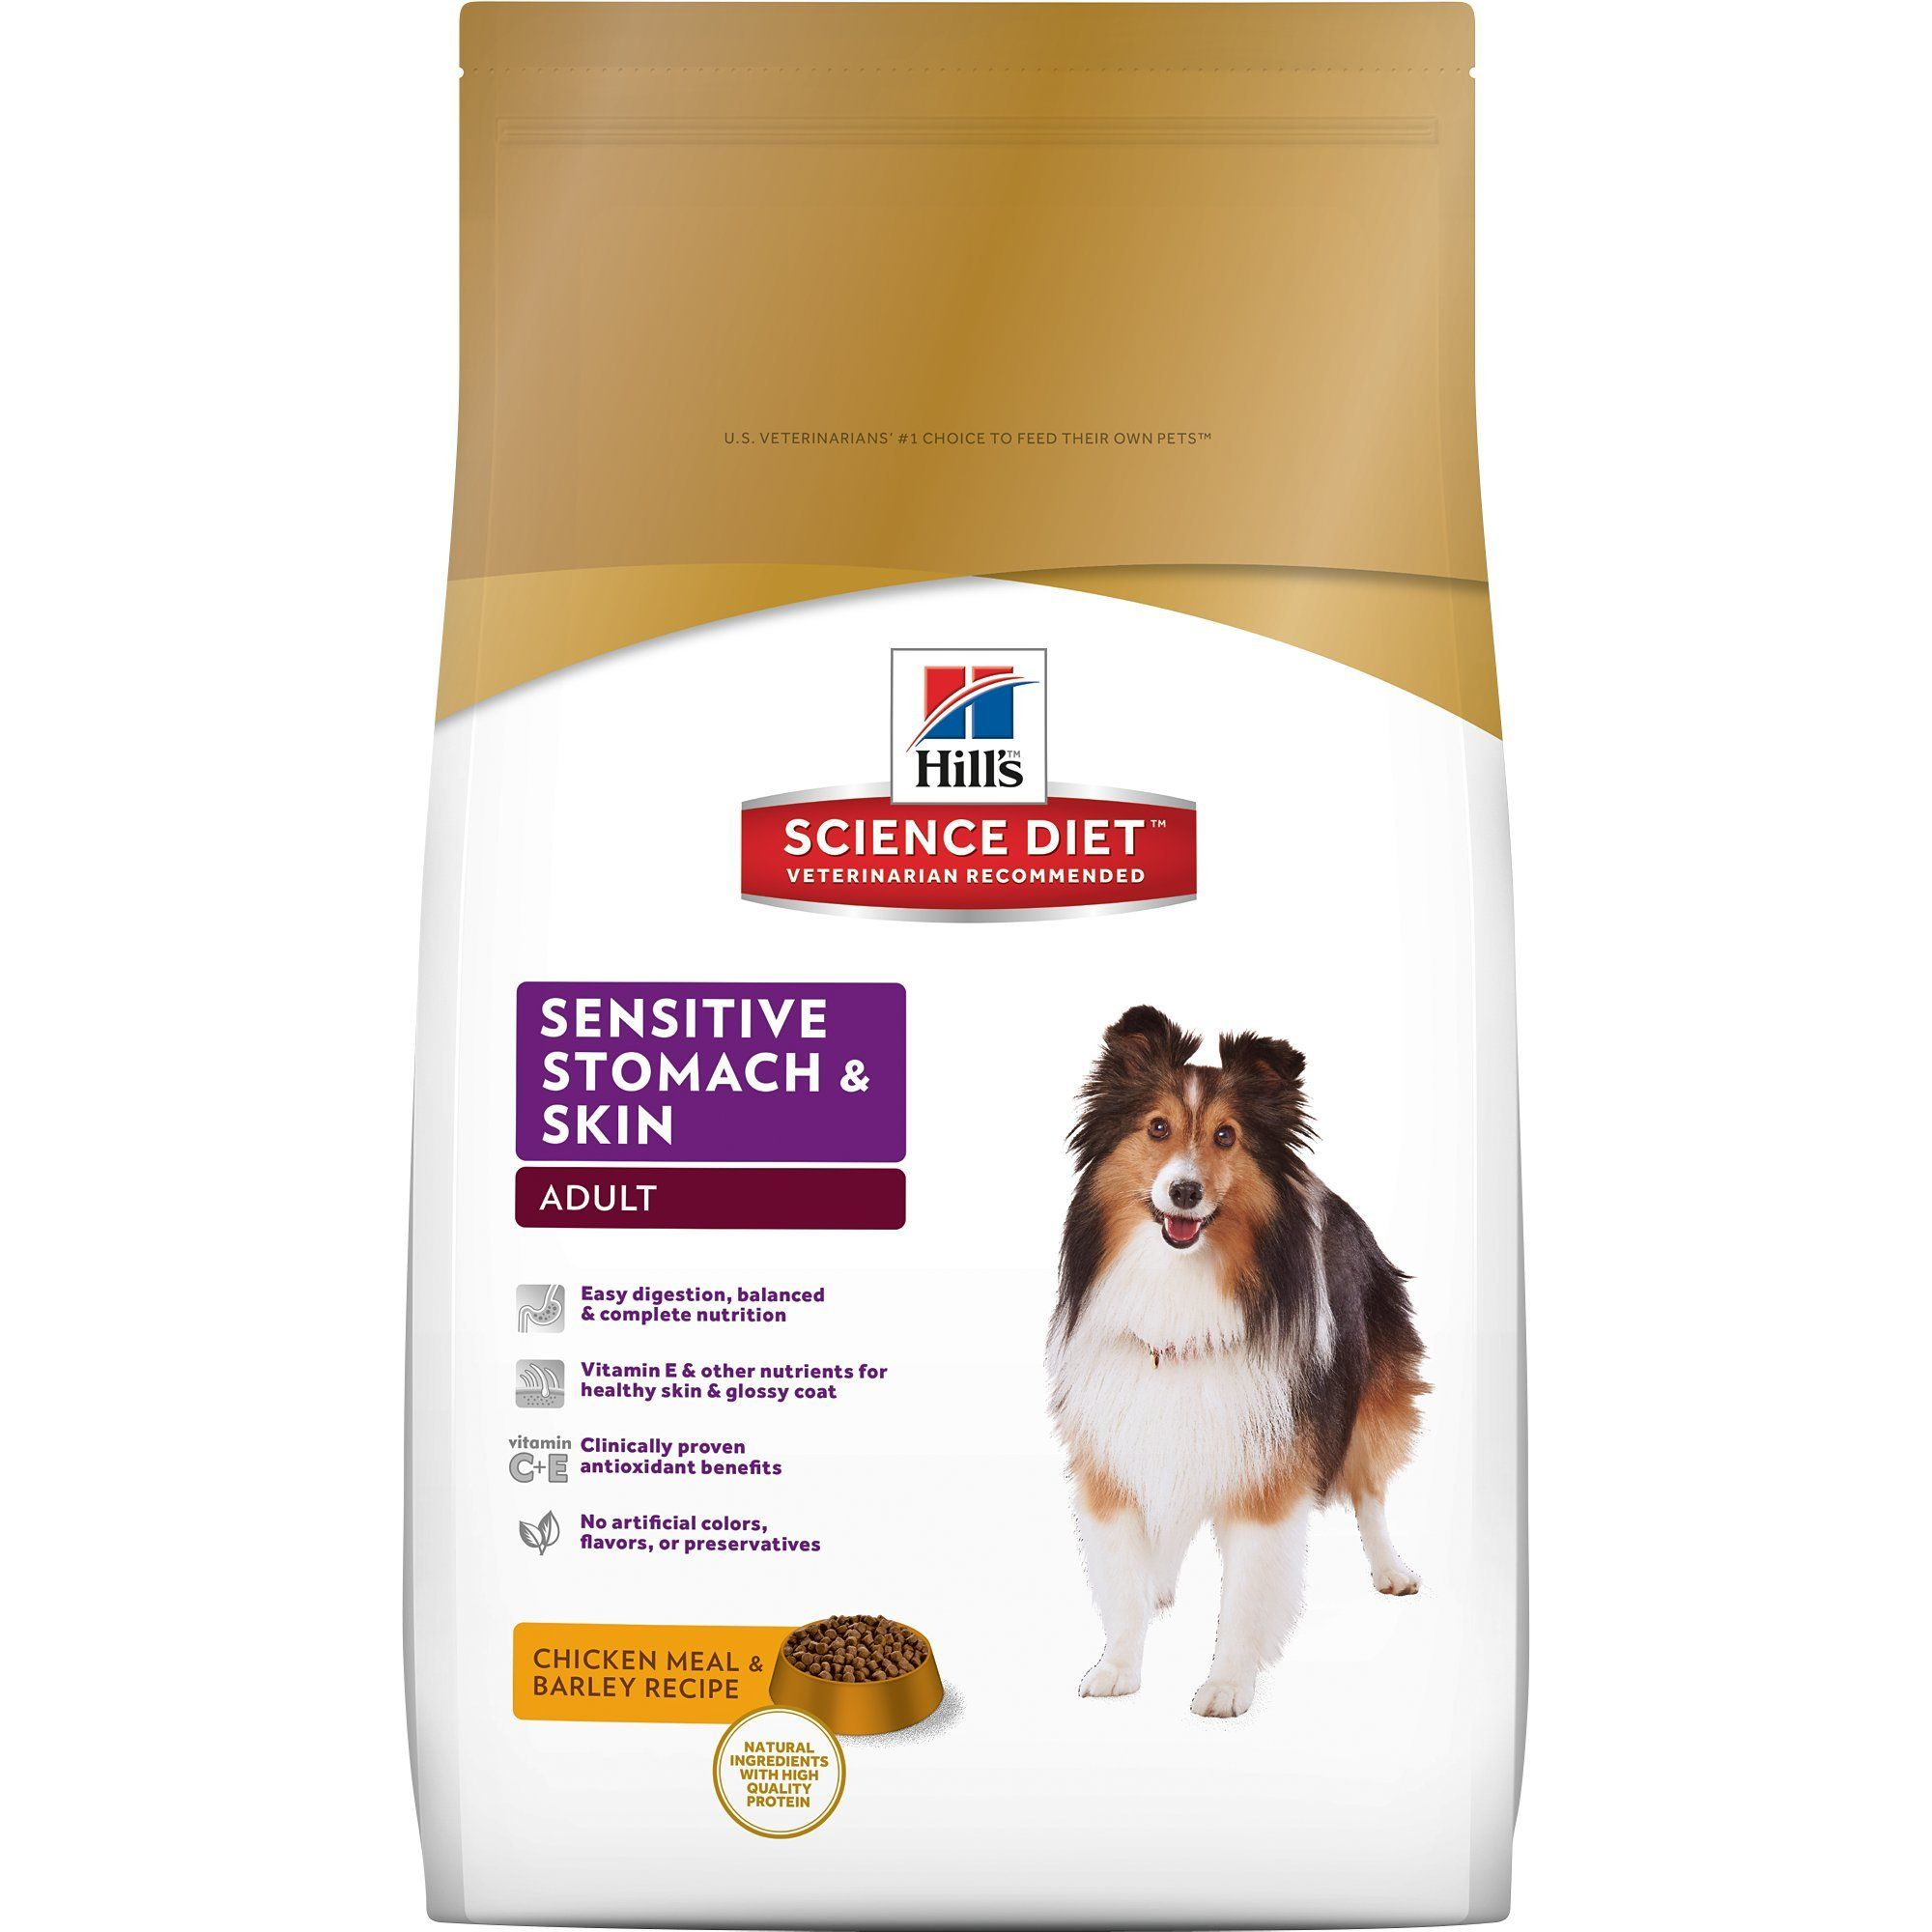 Hills Science Diet Adult Sensitive Stomach And Skin Dog Food